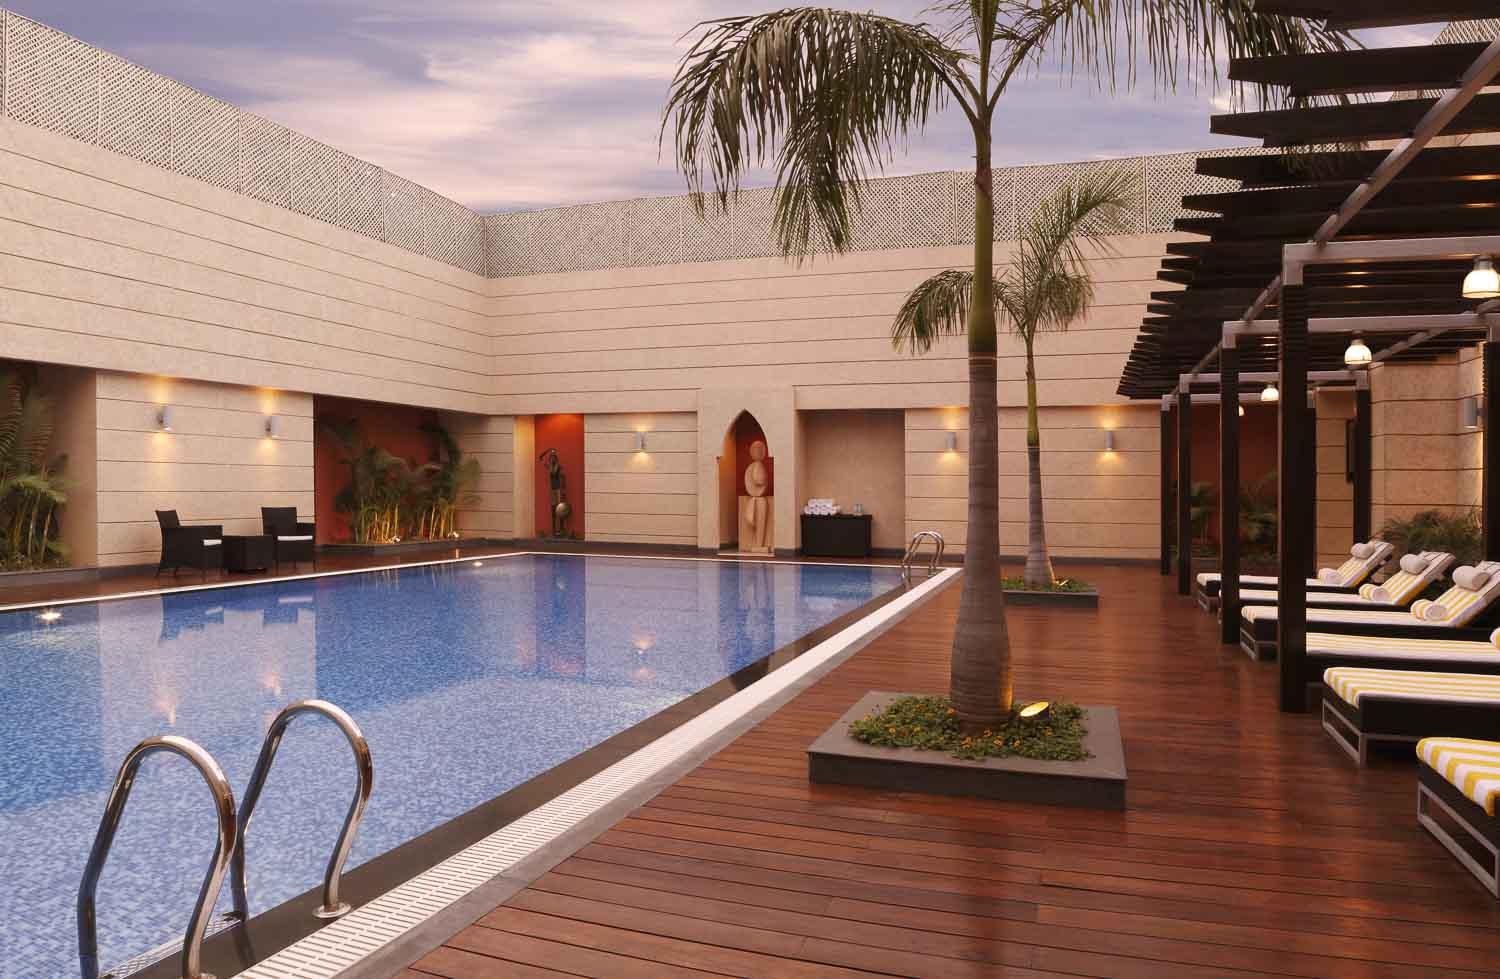 Lemon tree hotels hyderabad for Resorts with private swimming pool in hyderabad